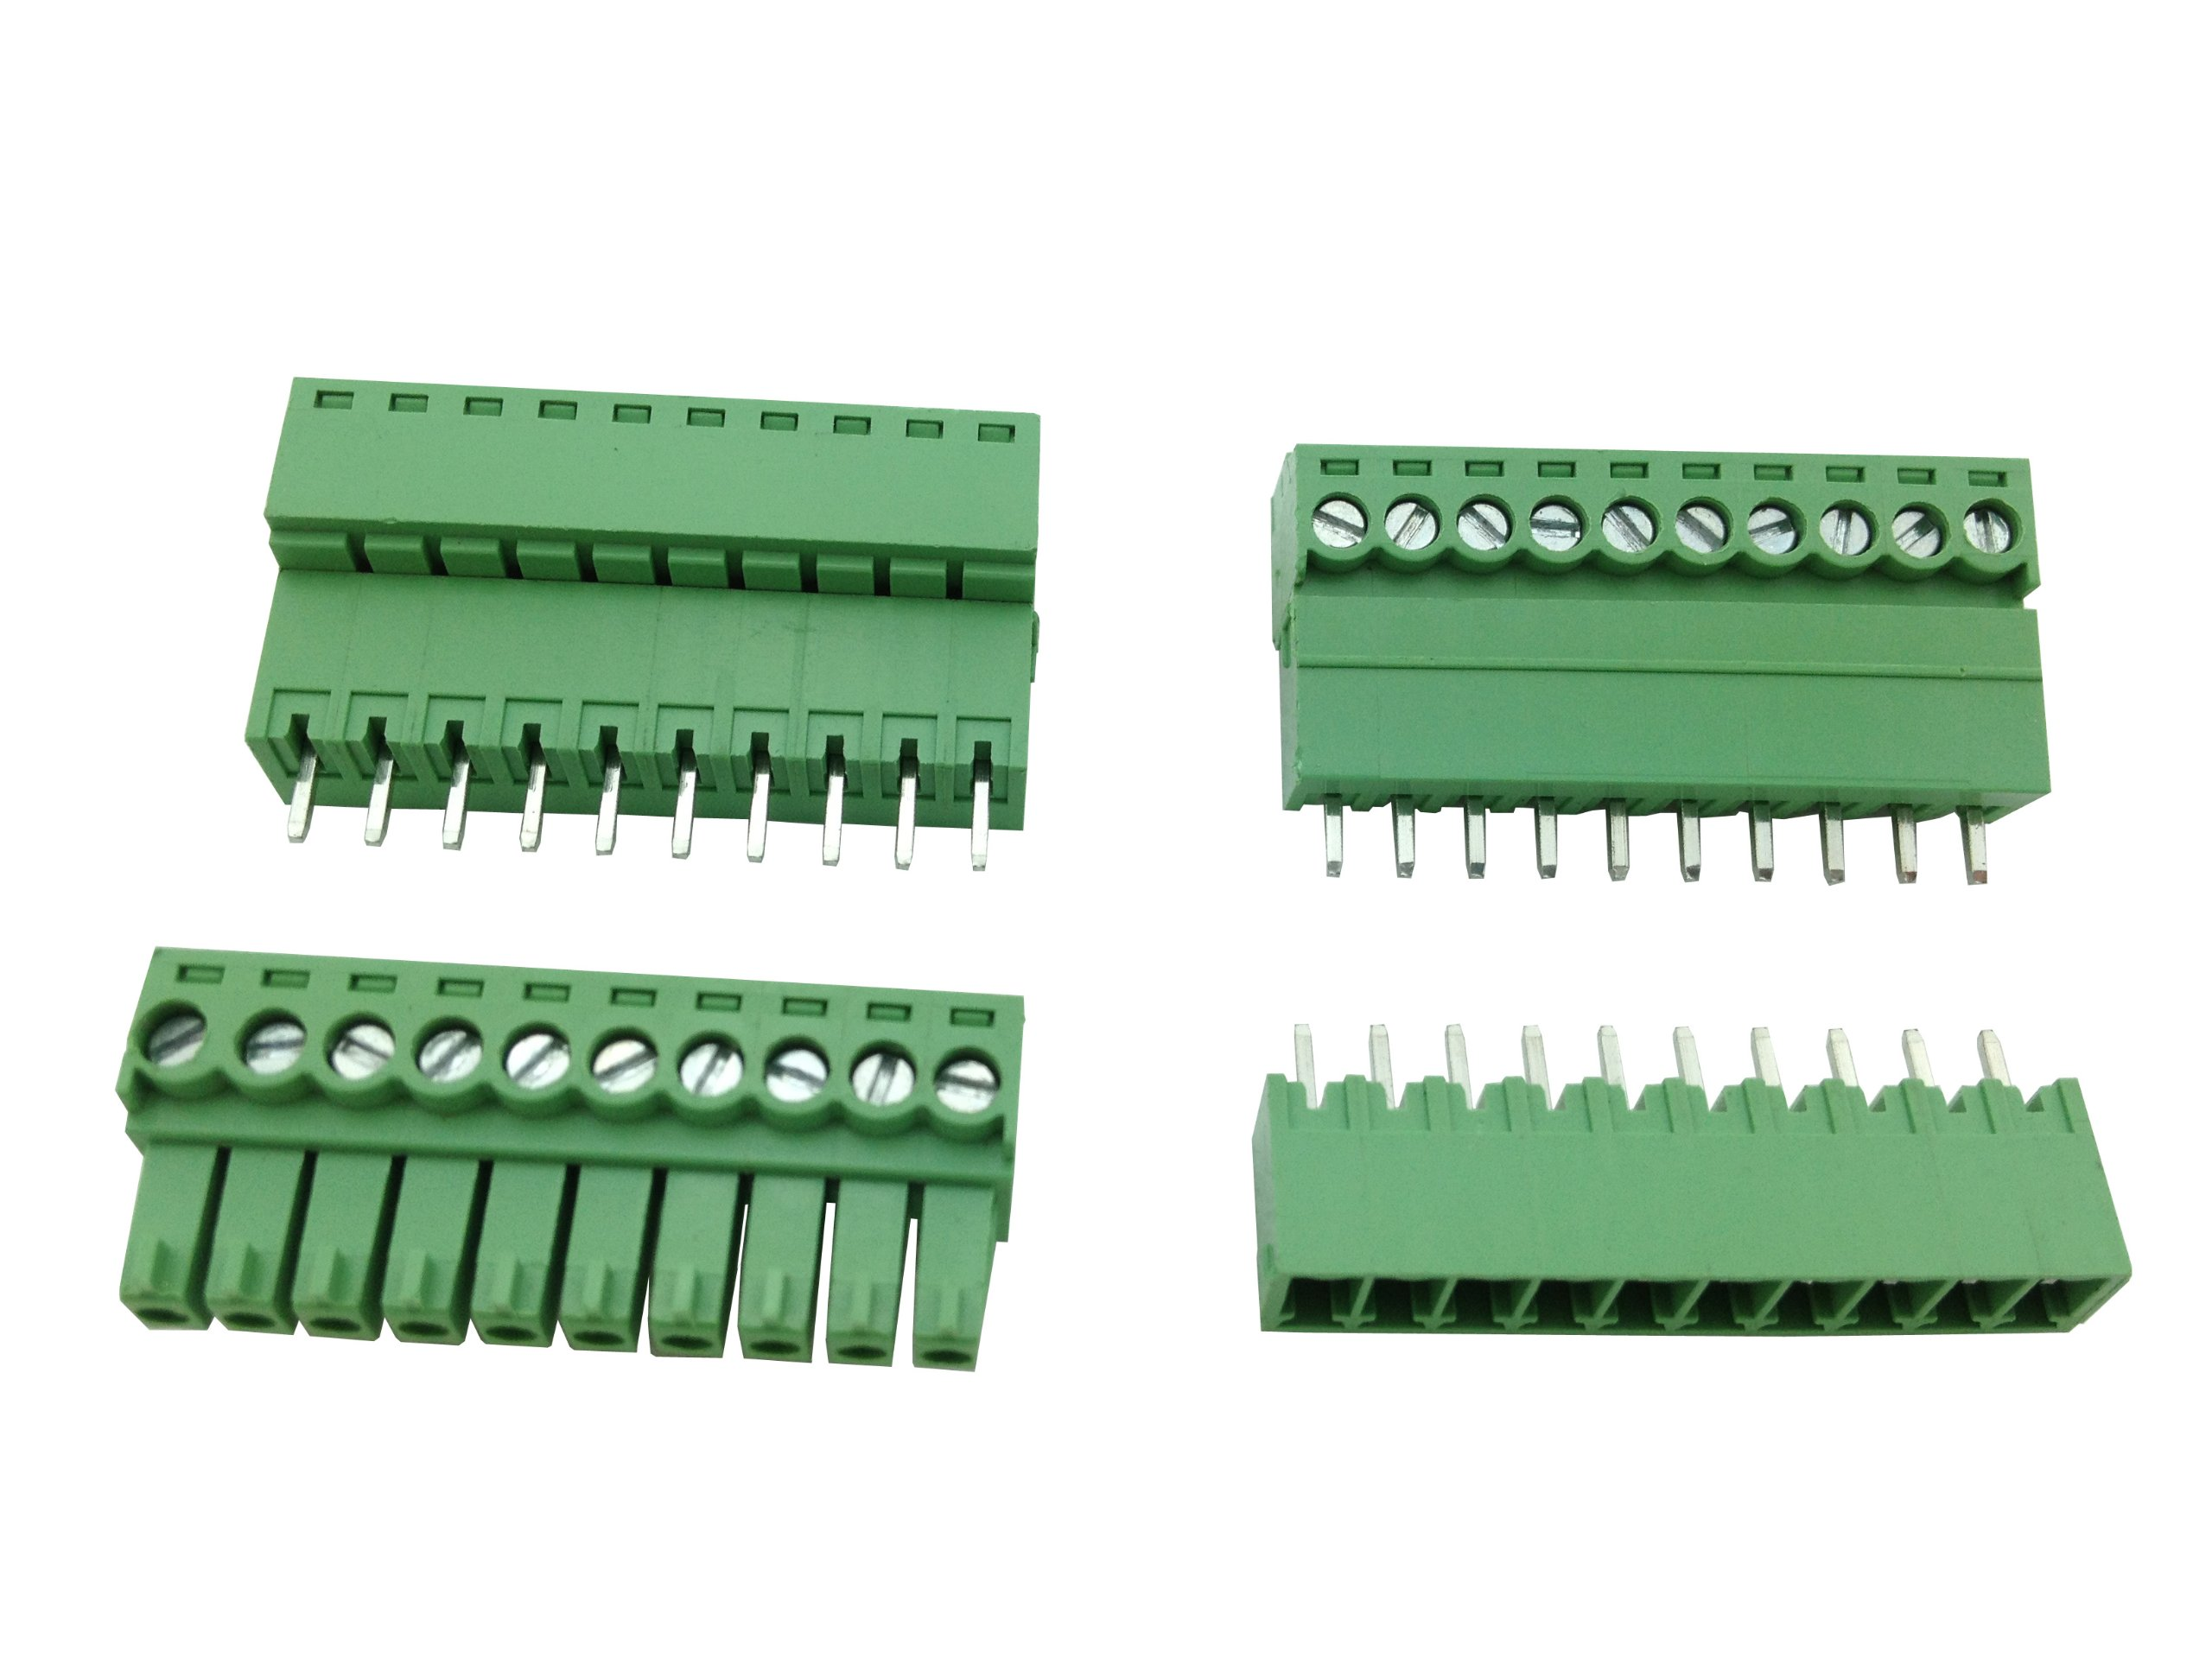 10 Pcs Pitch 3.5mm 10way/pin Screw Terminal Block Connector w/ Straight-pin Green Color Pluggable Type Skywalking